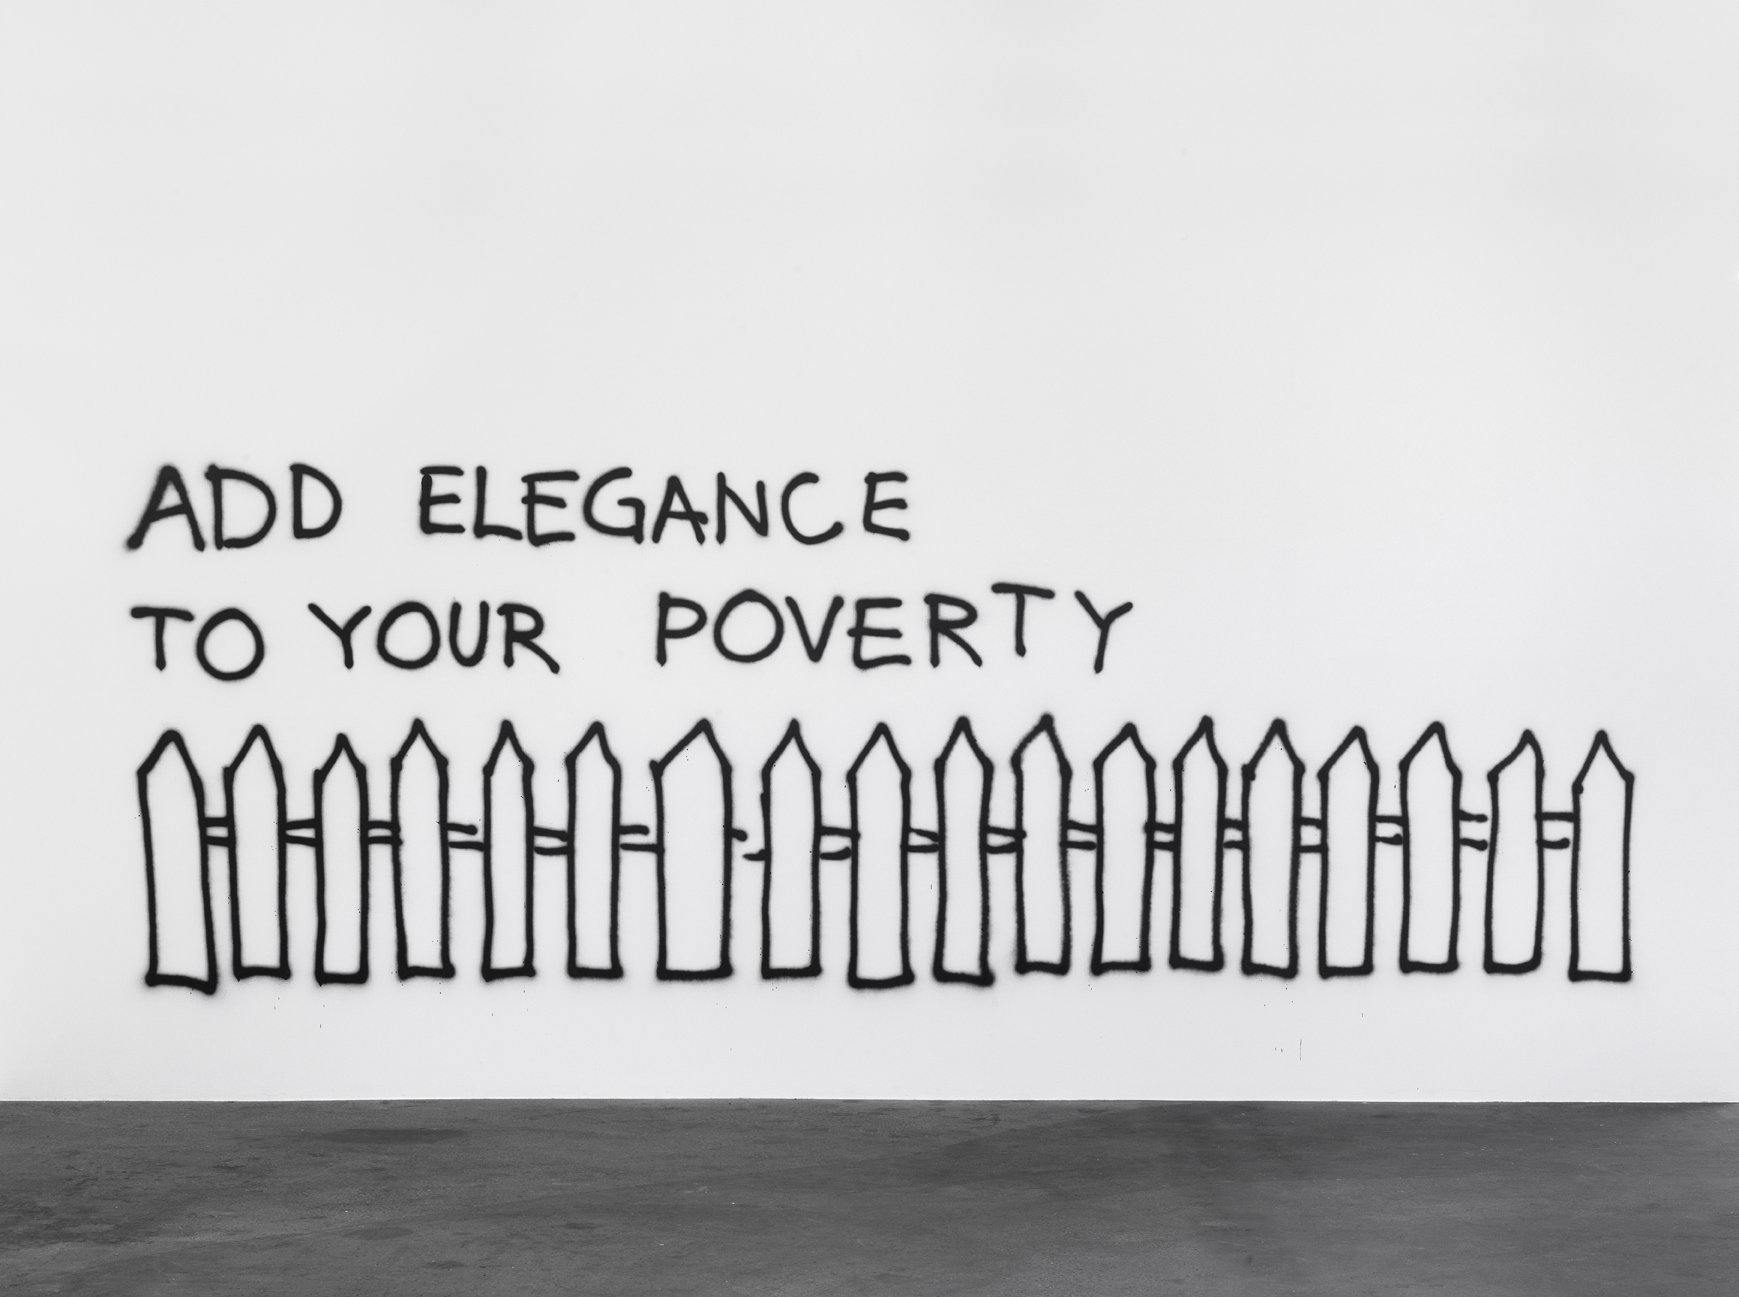 add-elegance-to-your-poverty